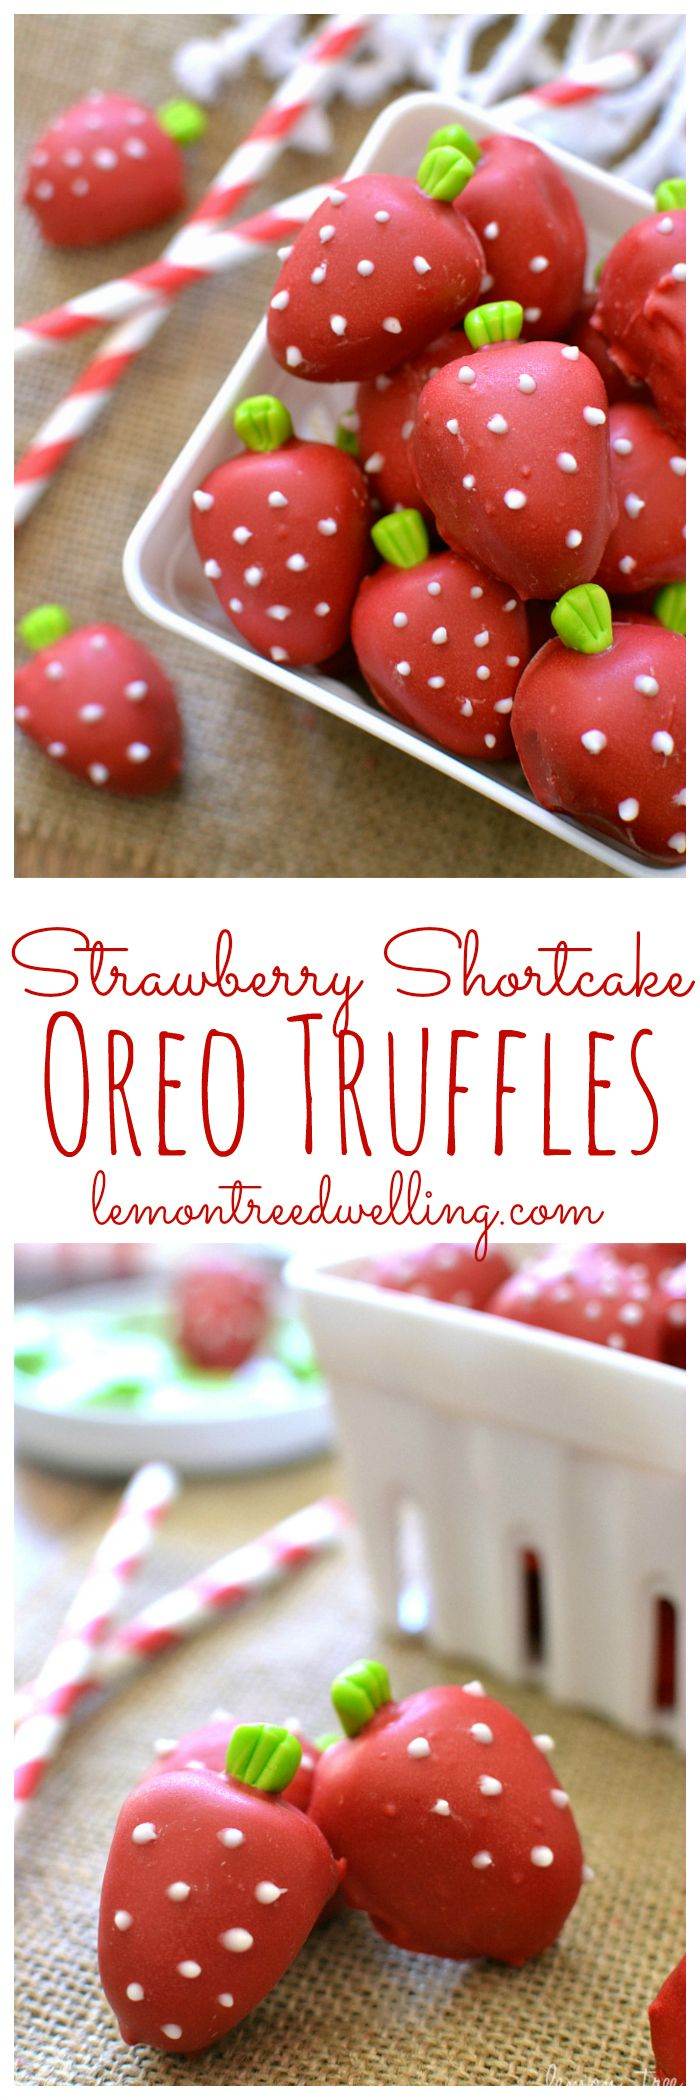 Strawberry Shortcake Oreo Truffles | Lemon Tree Dwelling